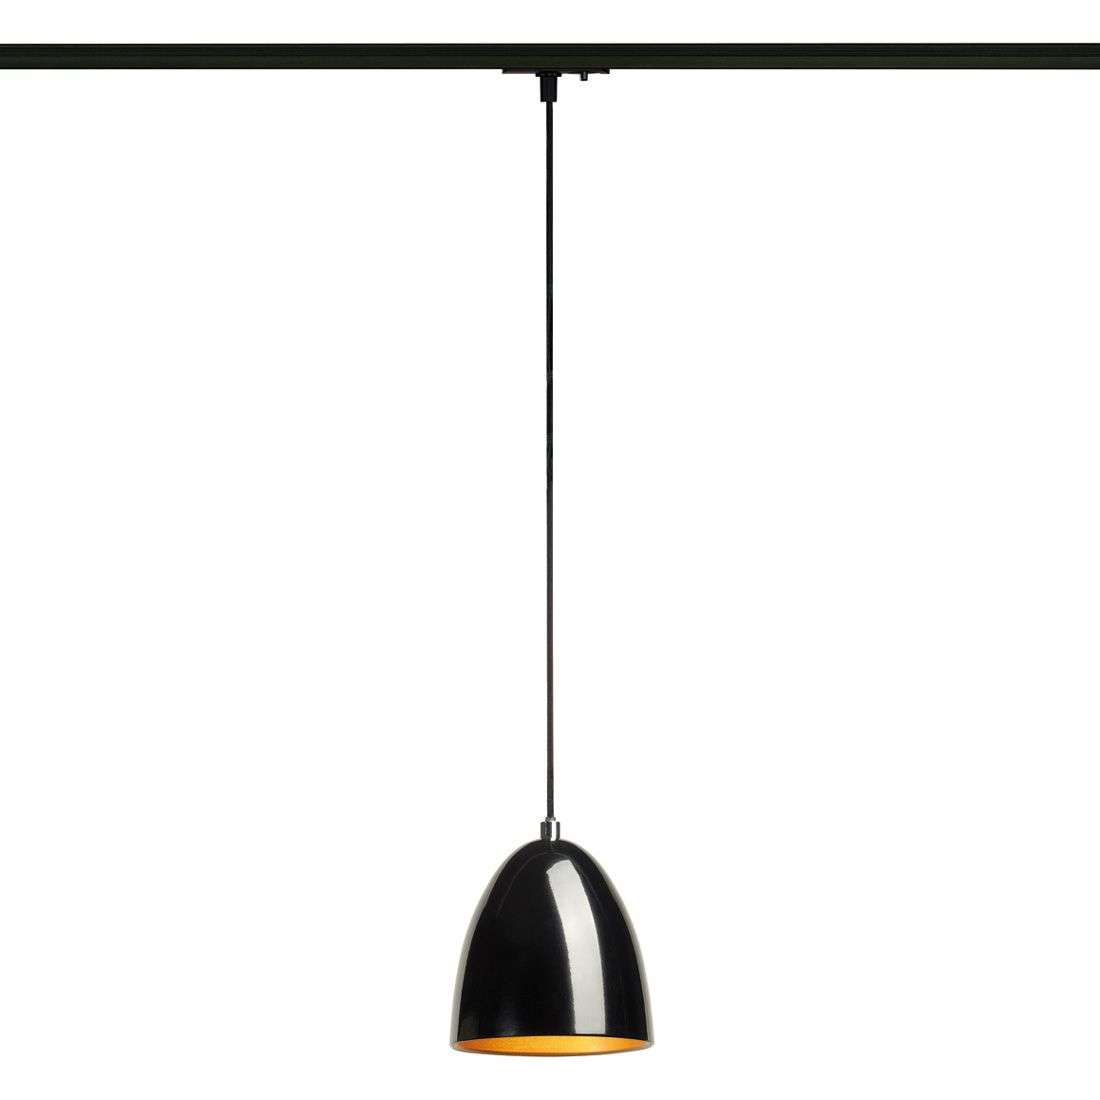 hanging pendants track. Black-gold Para Cone Hanging Lamp 1-circuit Tracks-5504690-31 Pendants Track